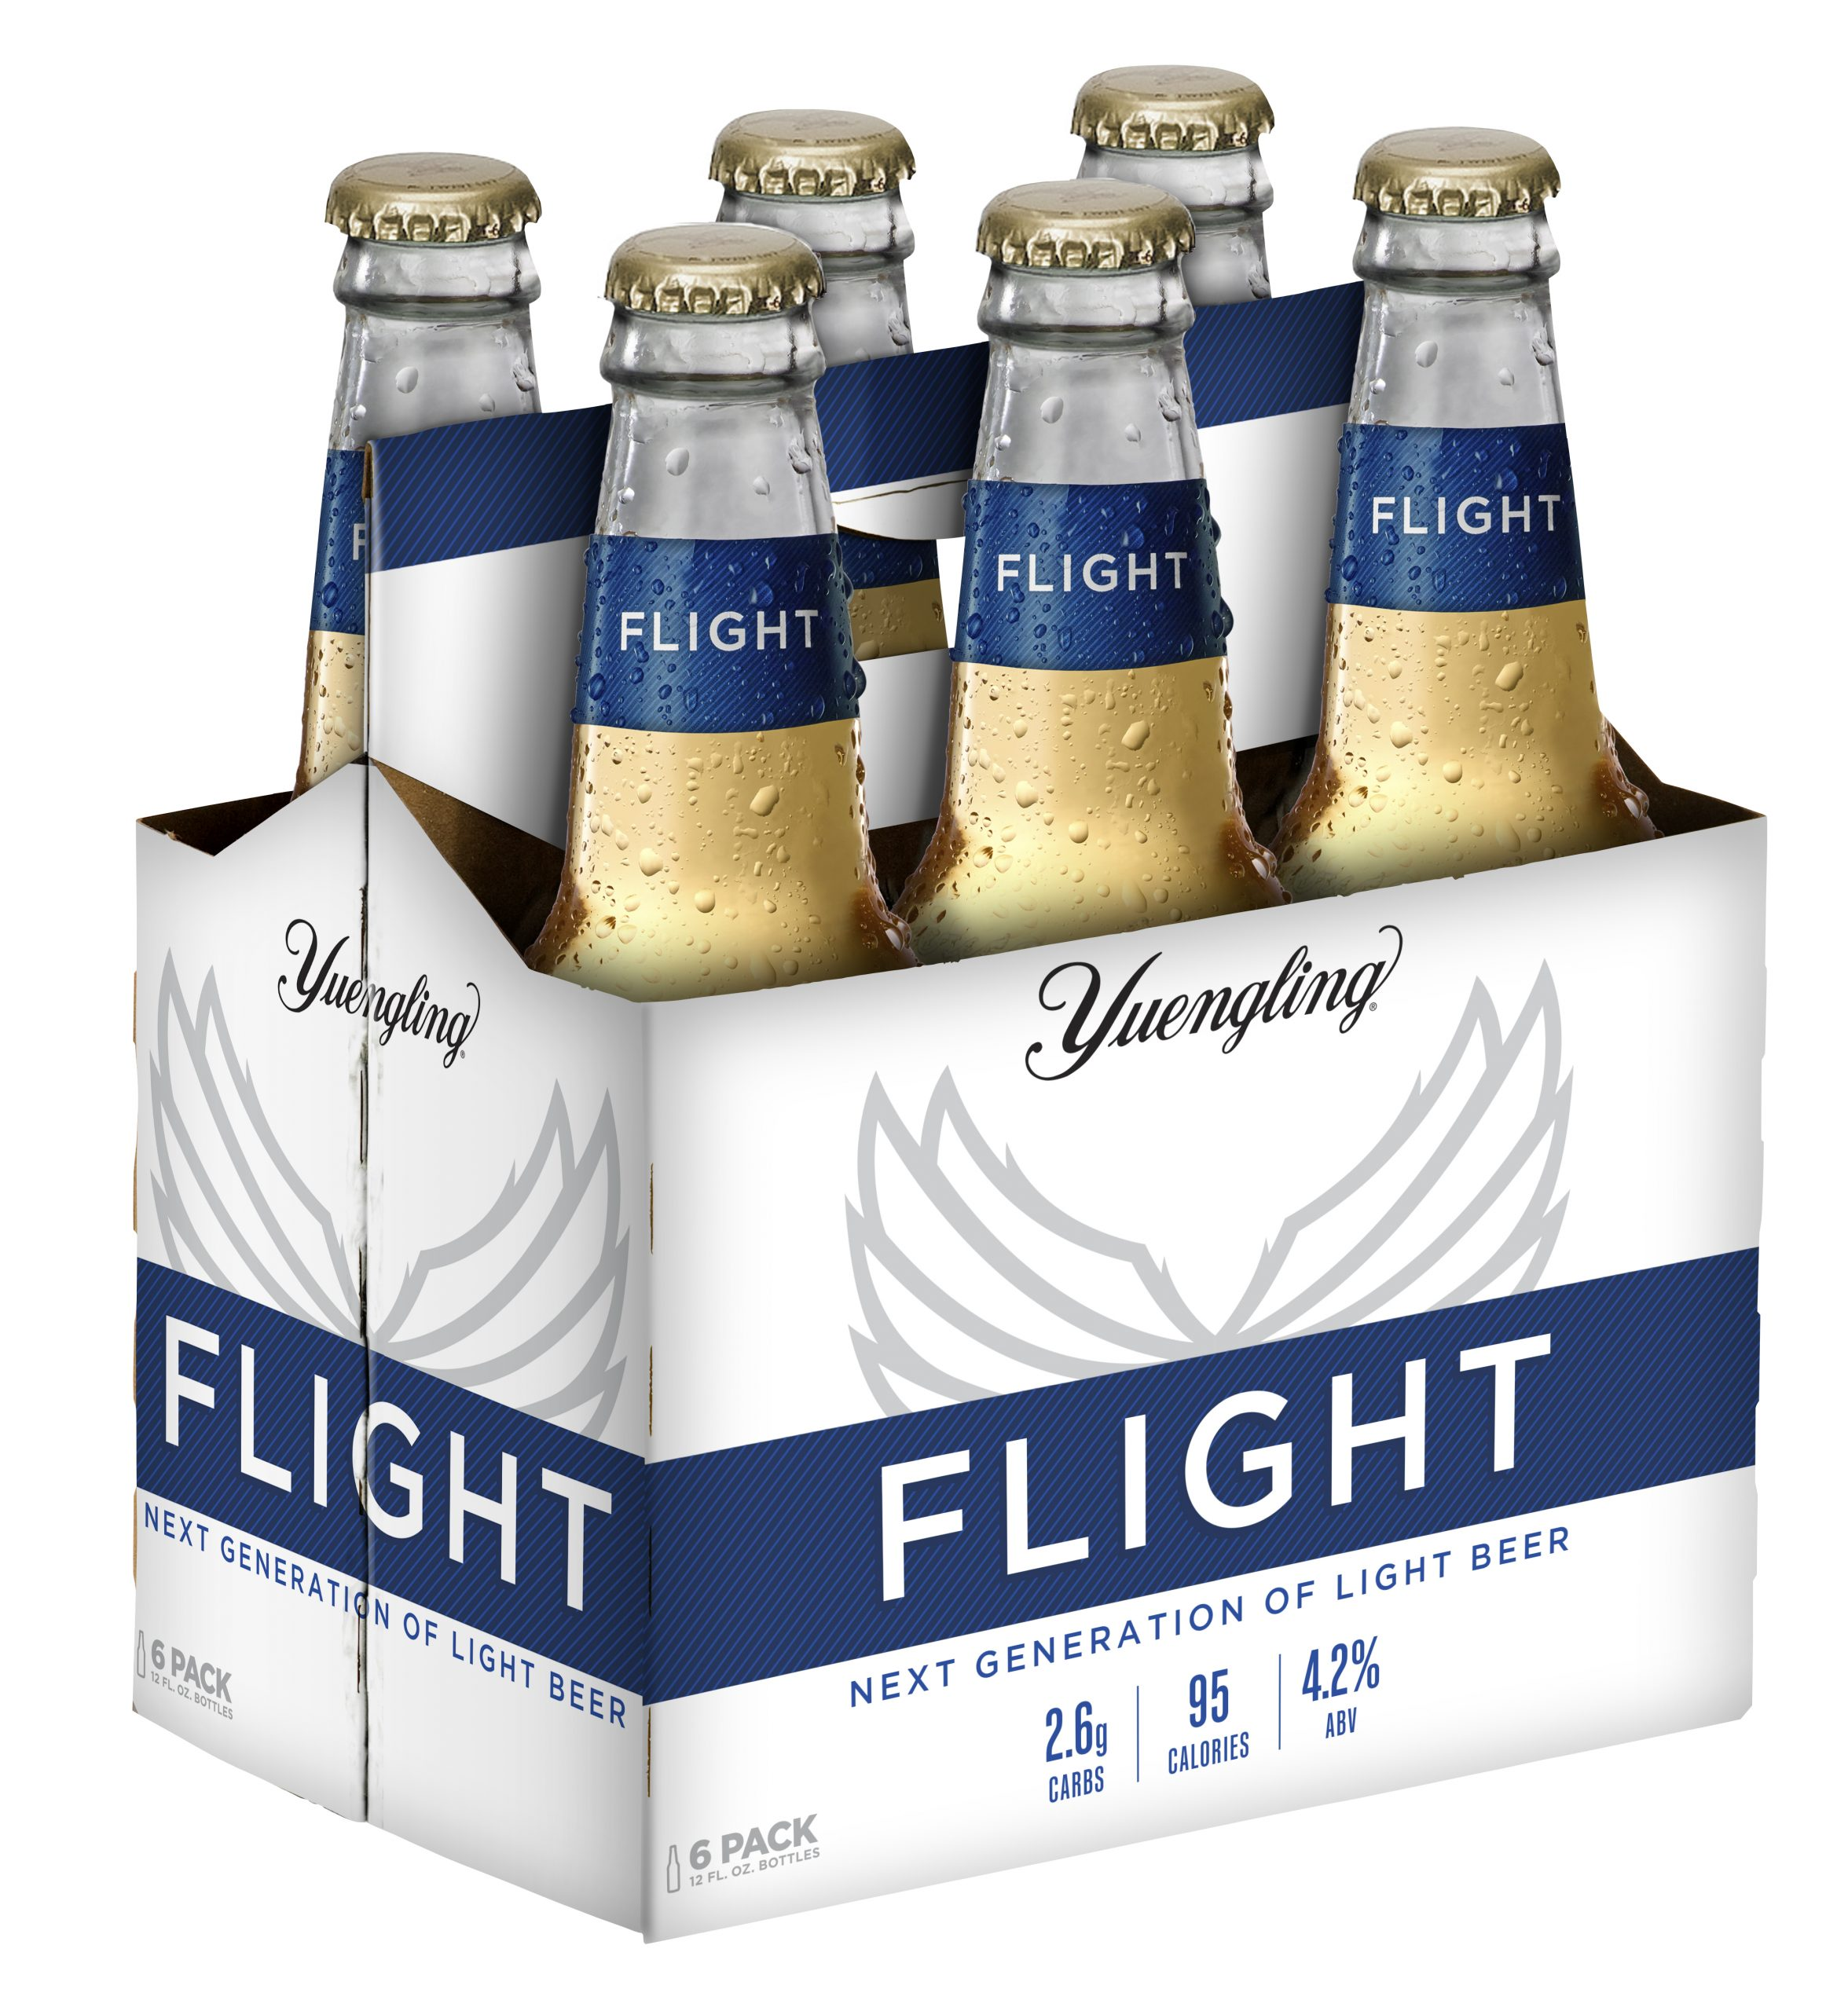 Yuengling Launches Flight The Next Generation Of Light Beer Yuengling